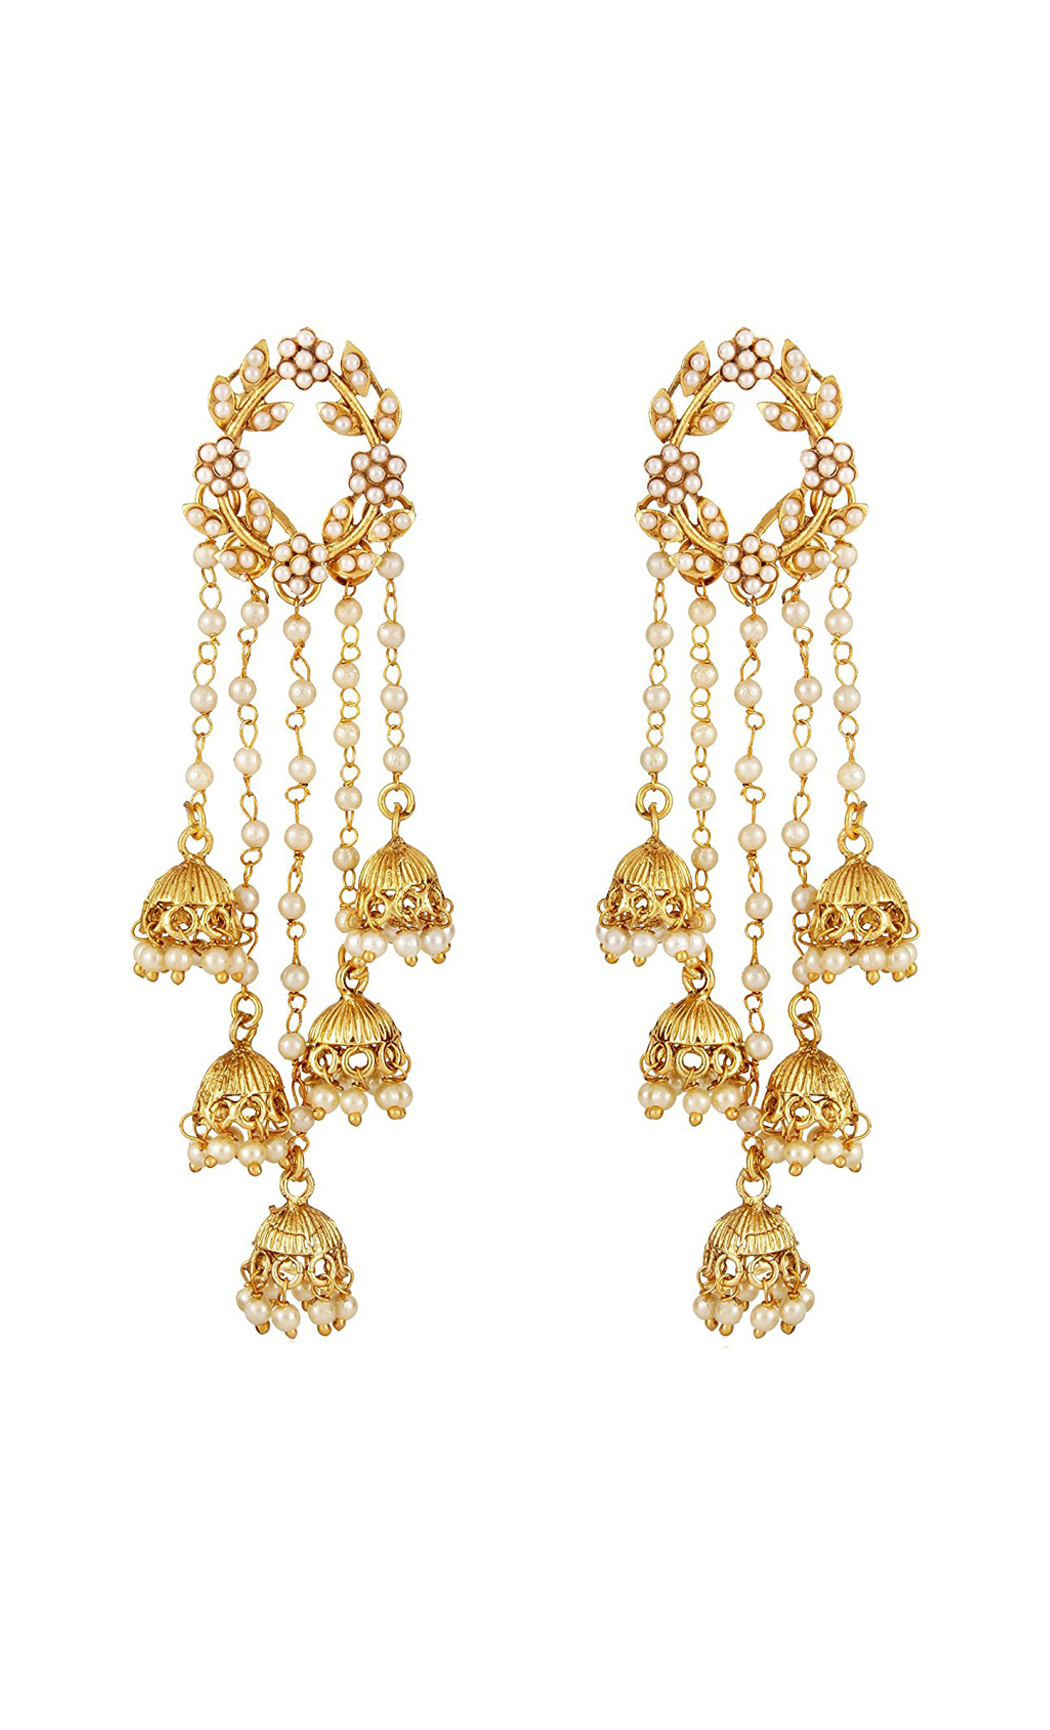 Gold and Pearl Dangler Earrings with Jhumkas | Wedding Earrings | Buy Online